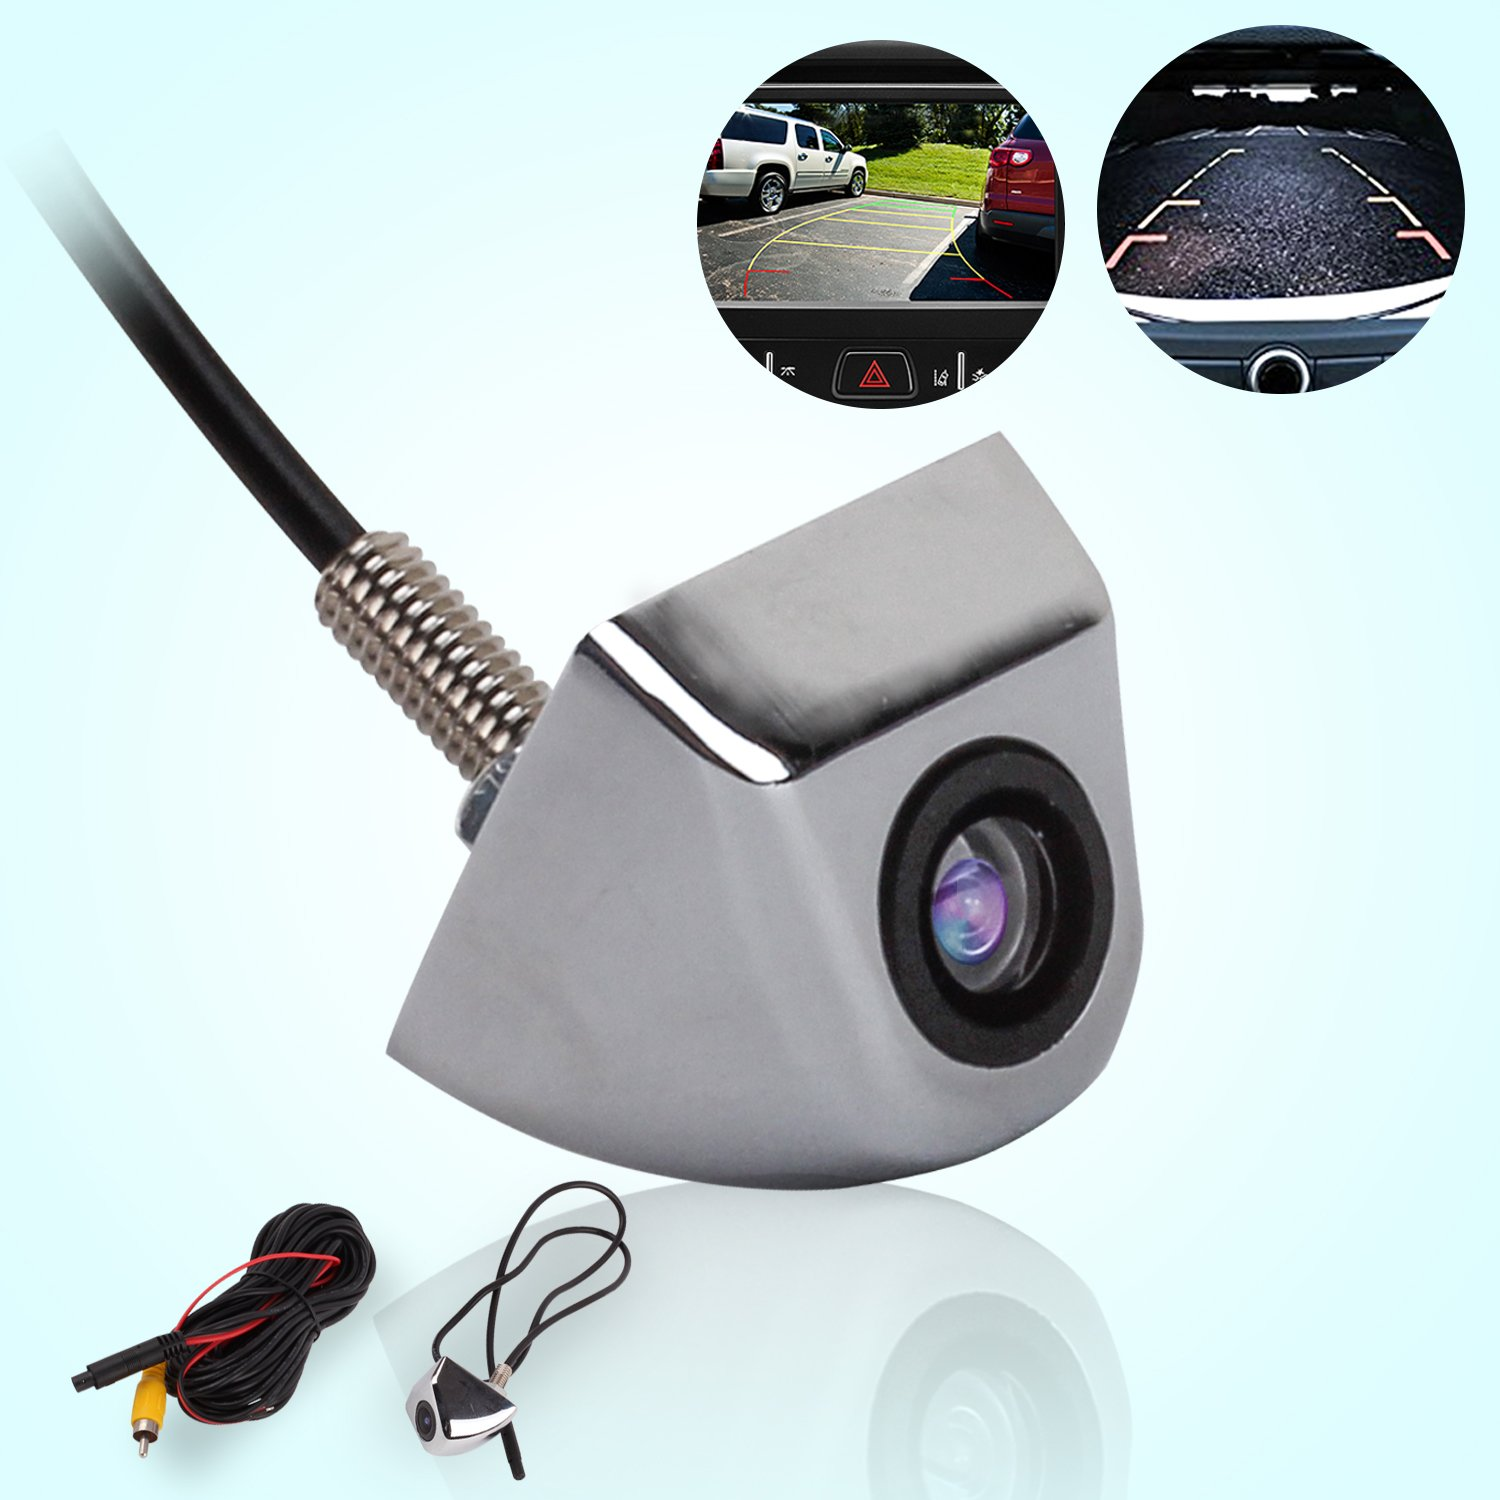 1 Year Warranty Silver JKCOVER 170 Degree Night Vision Car Rear View Camera Rear-View Back-up and Parking Camera Universal Waterproof Color CCD Imaging Chip Truck Car Rear View Camera